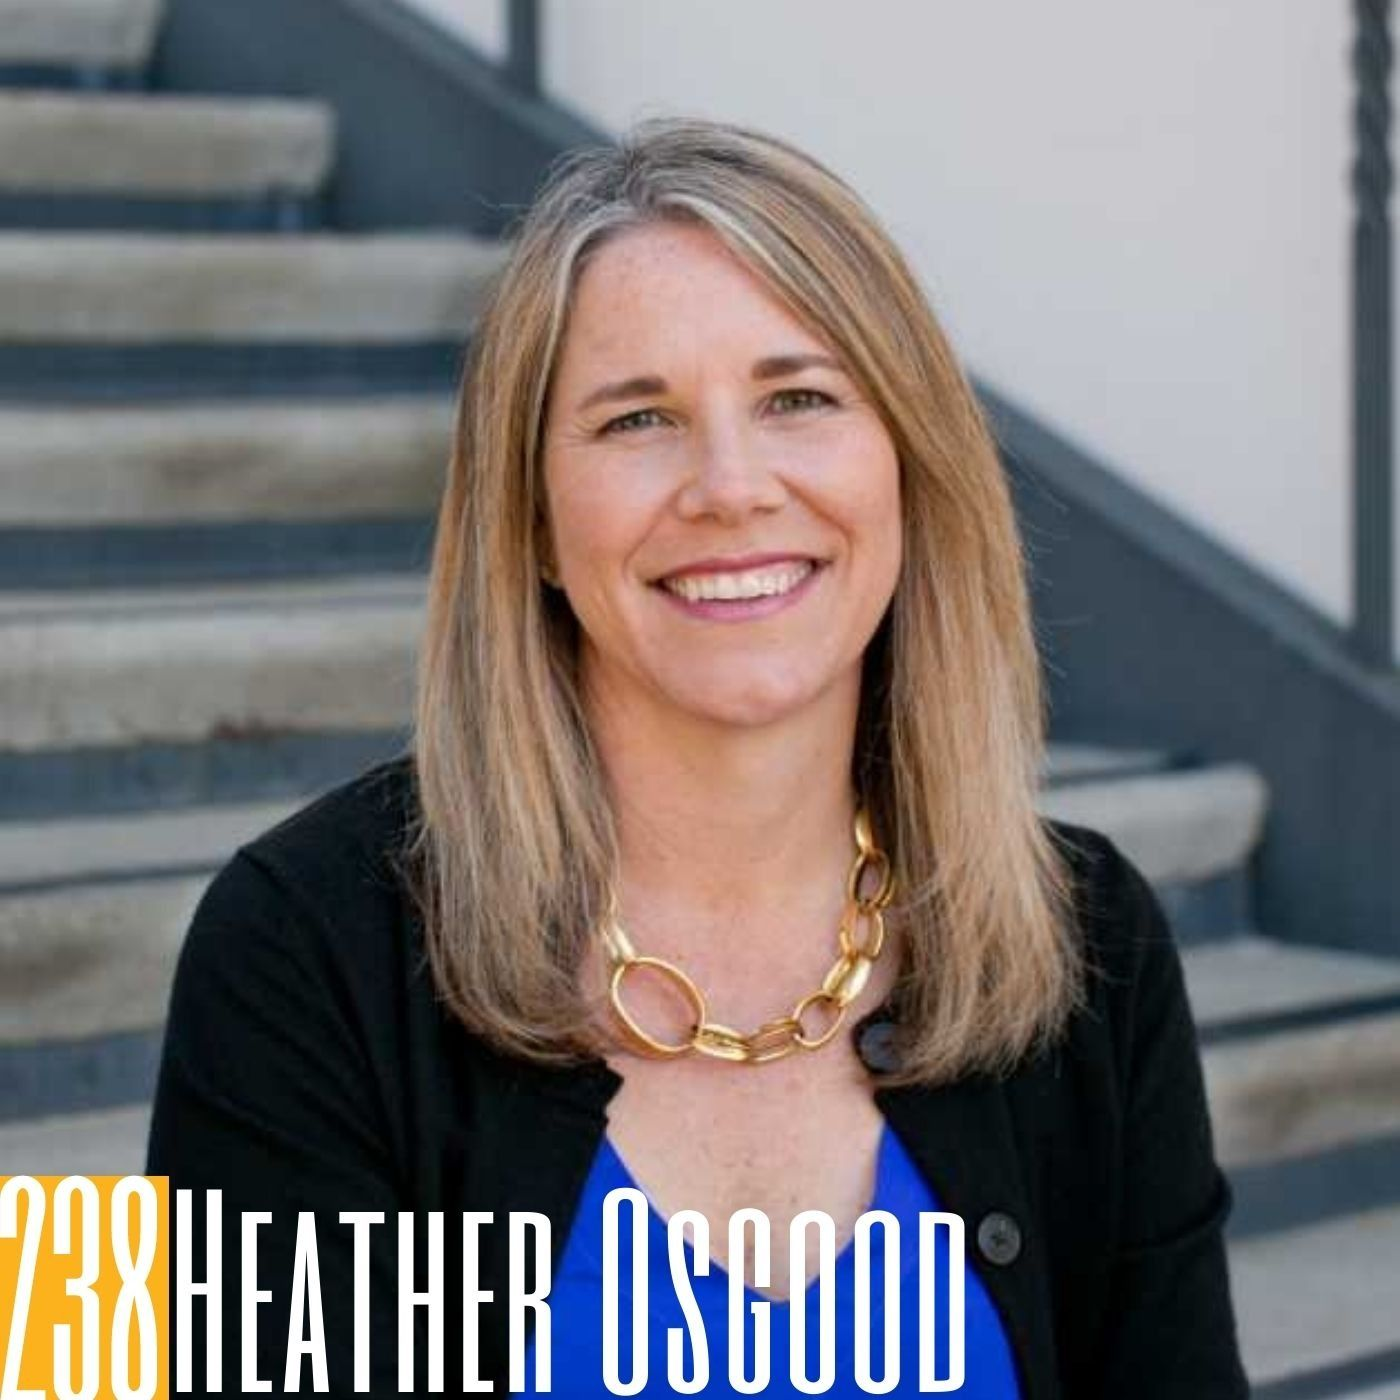 238 Heather Osgood - Start With the End in Mind